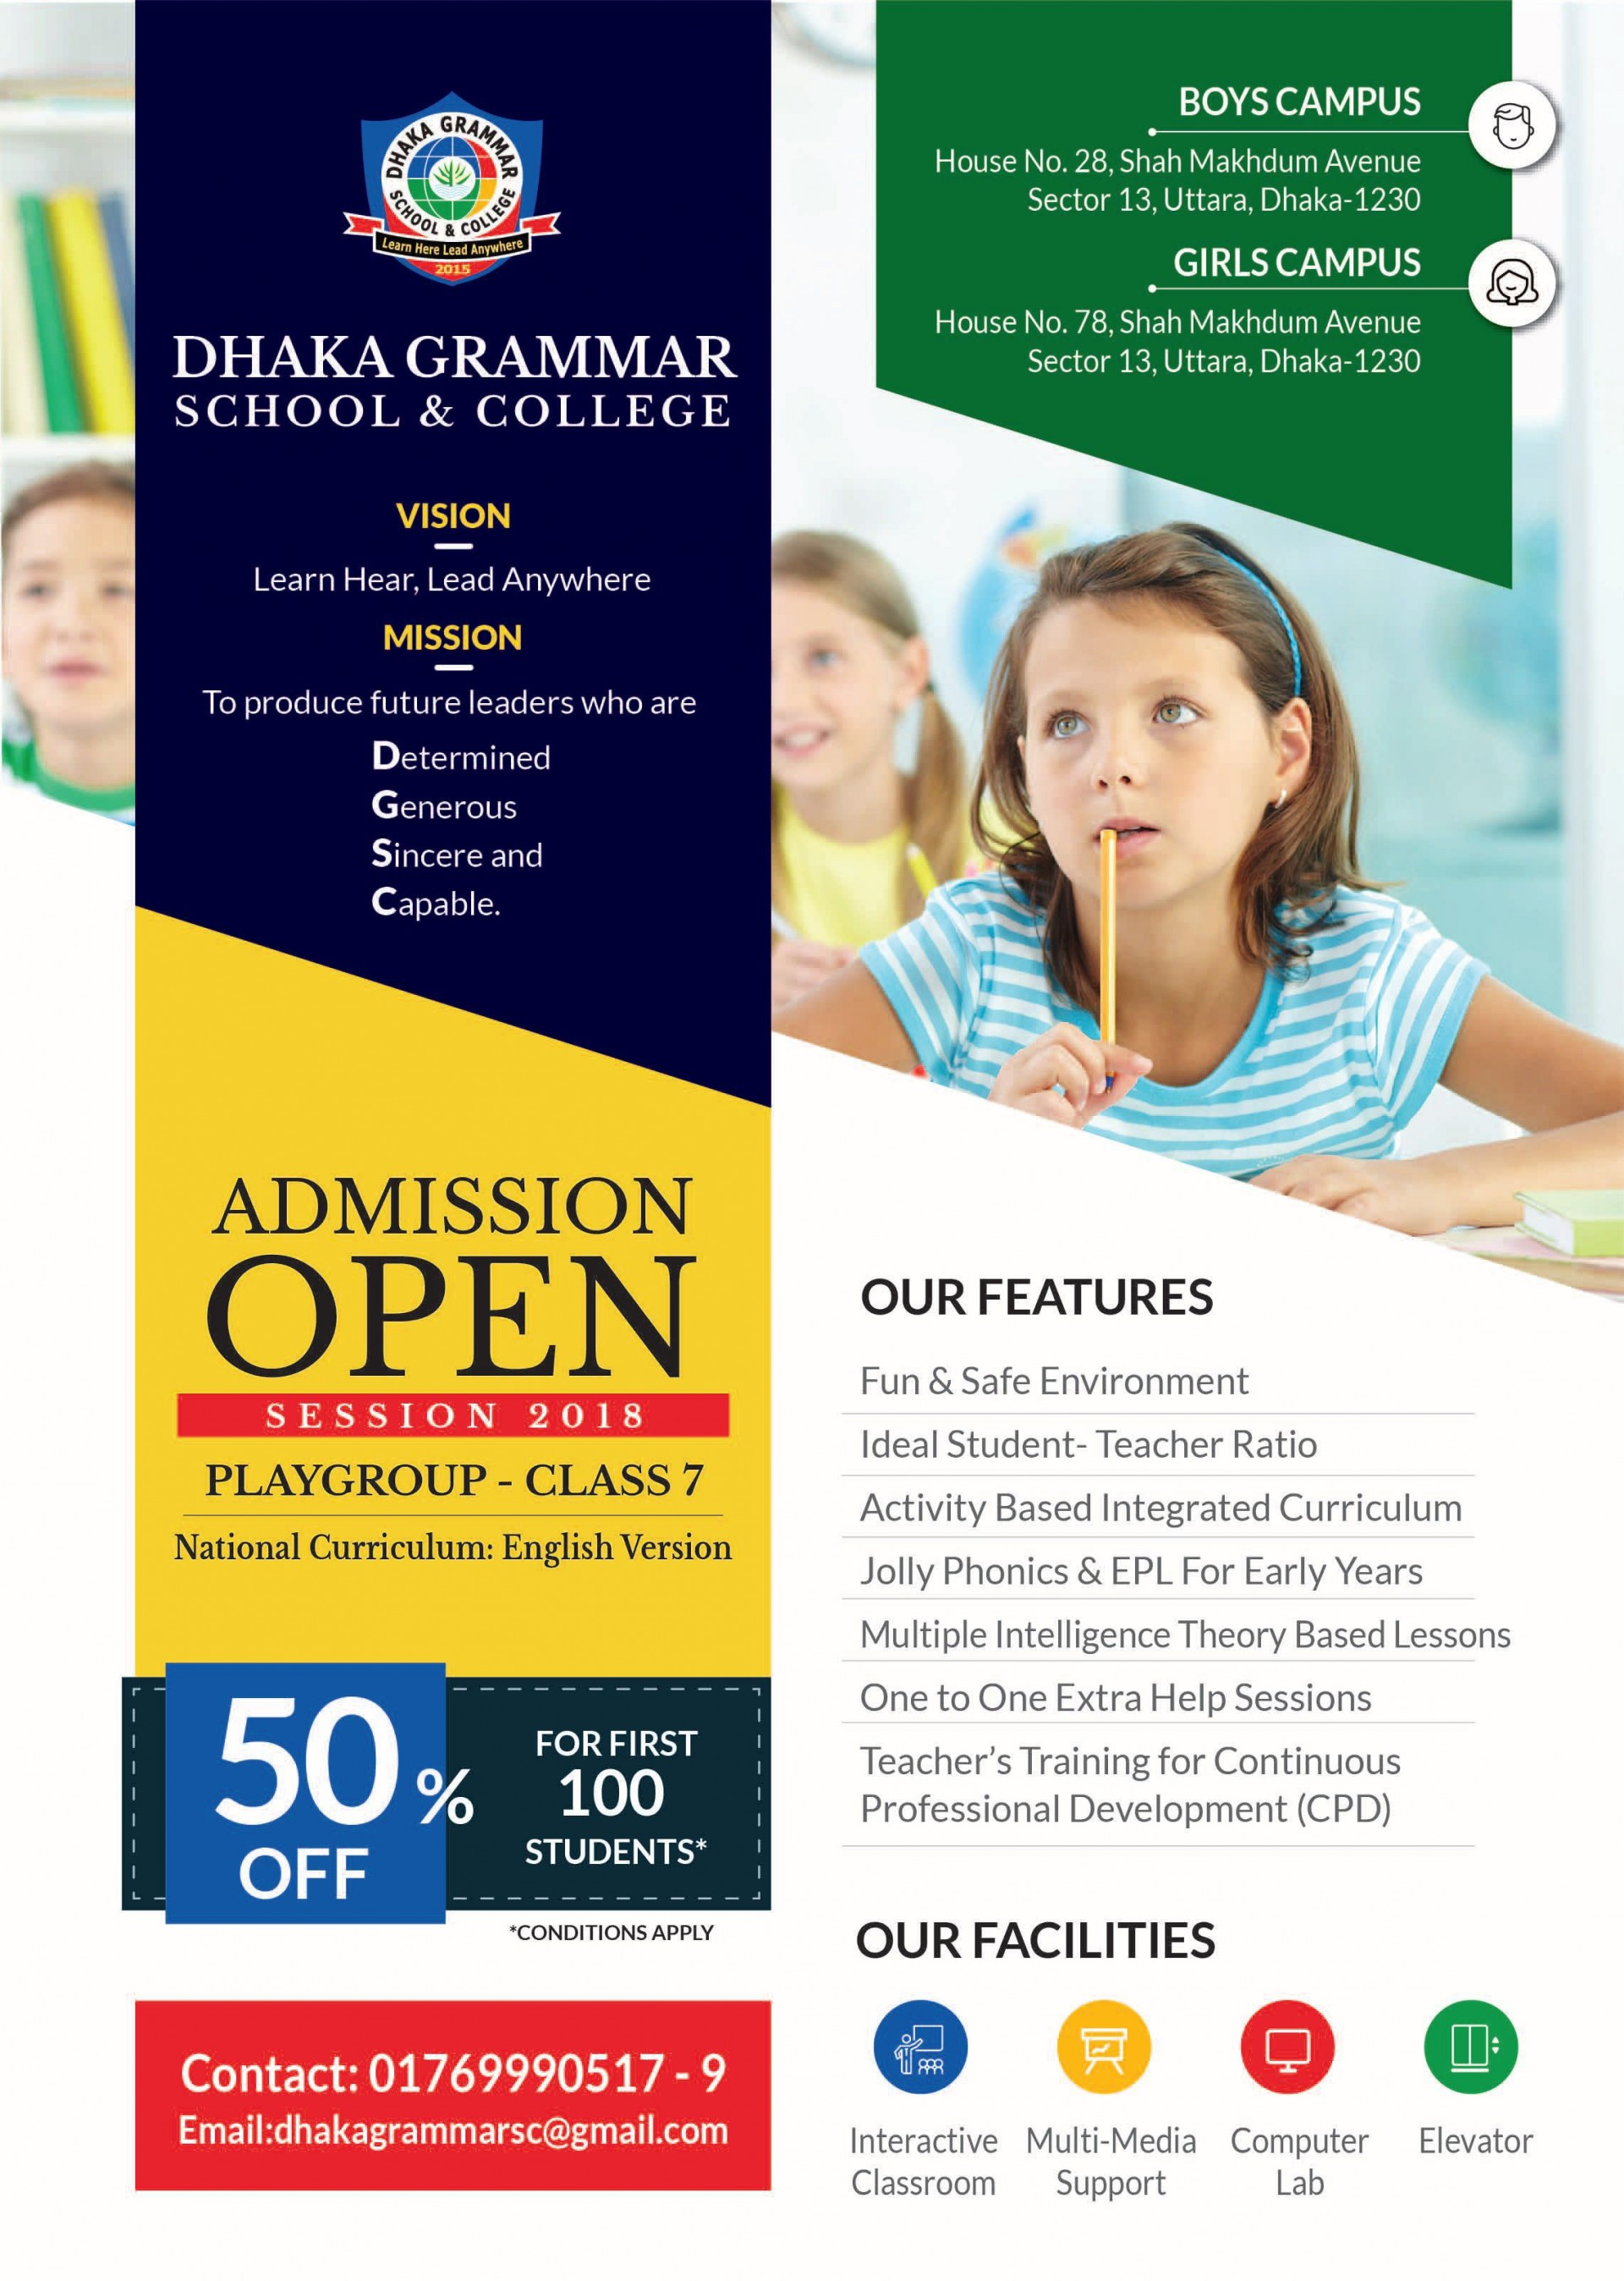 001 Outstanding School Open House Flyer Template Highest Clarity  Free Microsoft1920